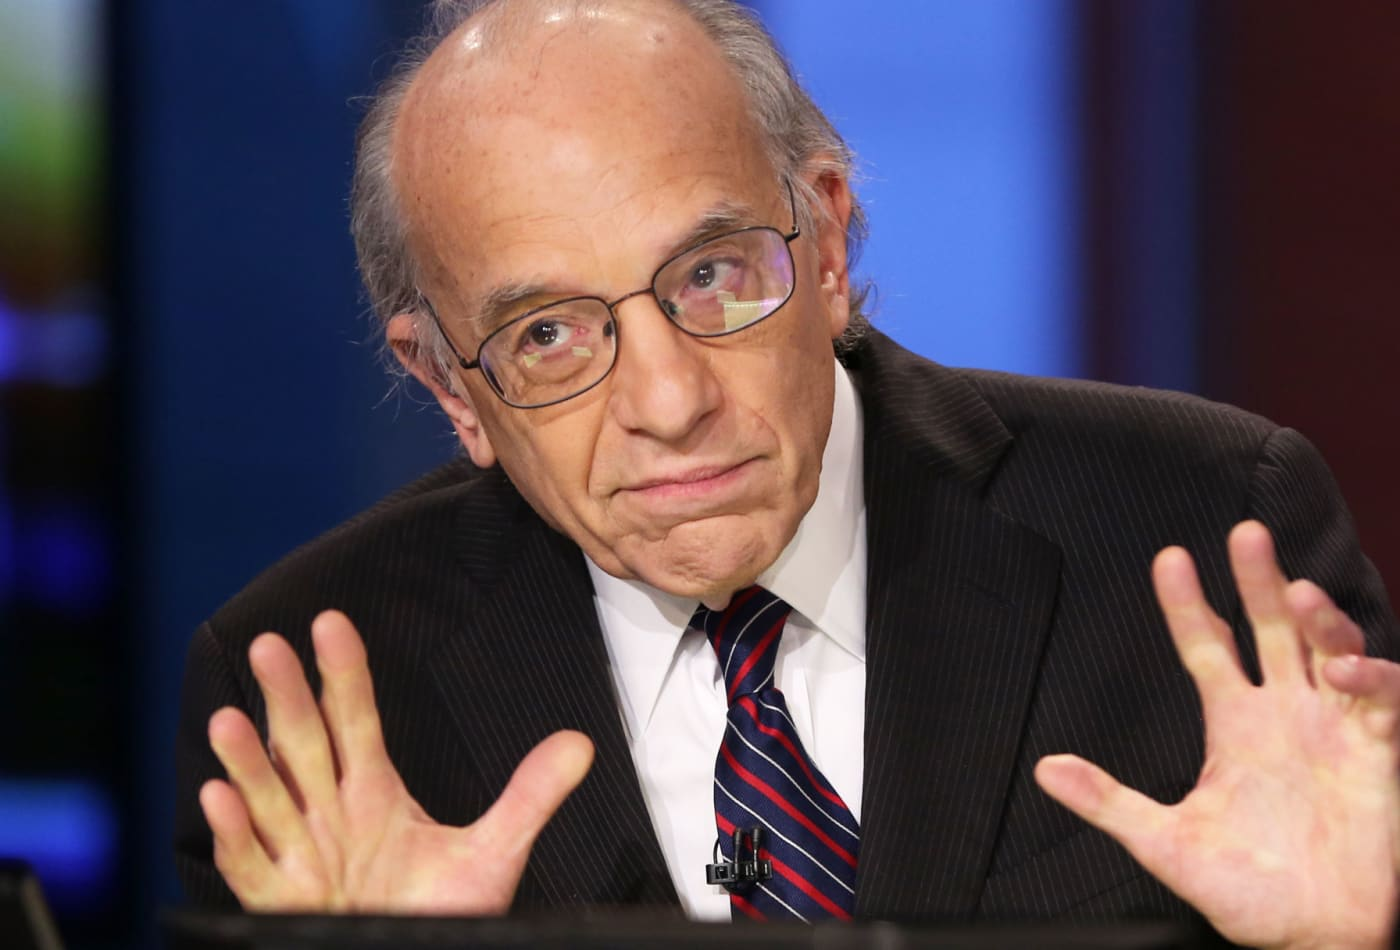 Jeremy Siegel sees value stocks outperforming in 2021 as economy reopens, investors look for yield